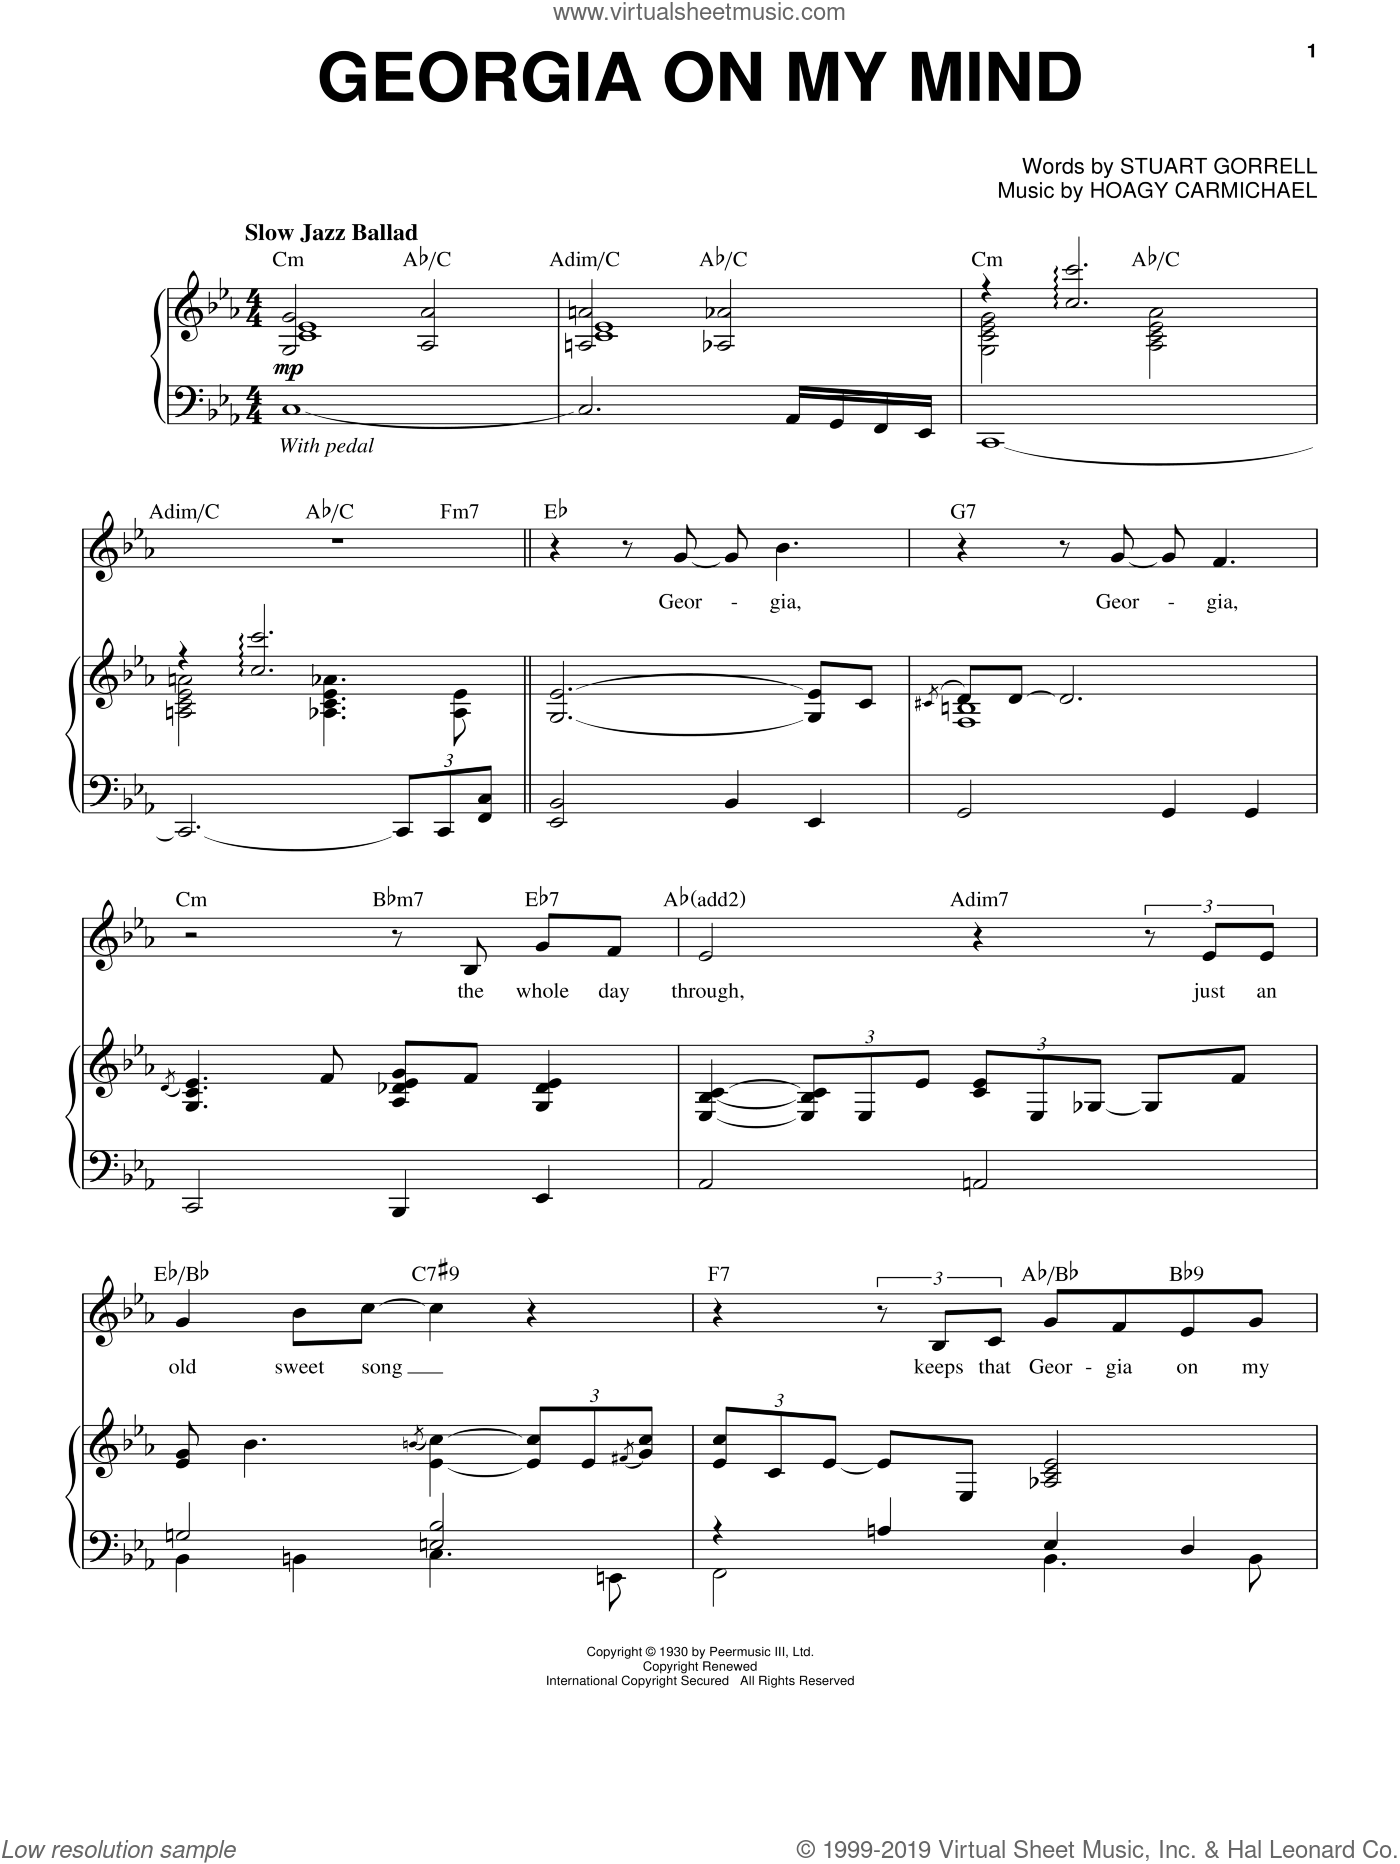 Georgia On My Mind sheet music for voice and piano by Michael Buble, Ray Charles, Willie Nelson, Hoagy Carmichael and Stuart Gorrell, intermediate skill level